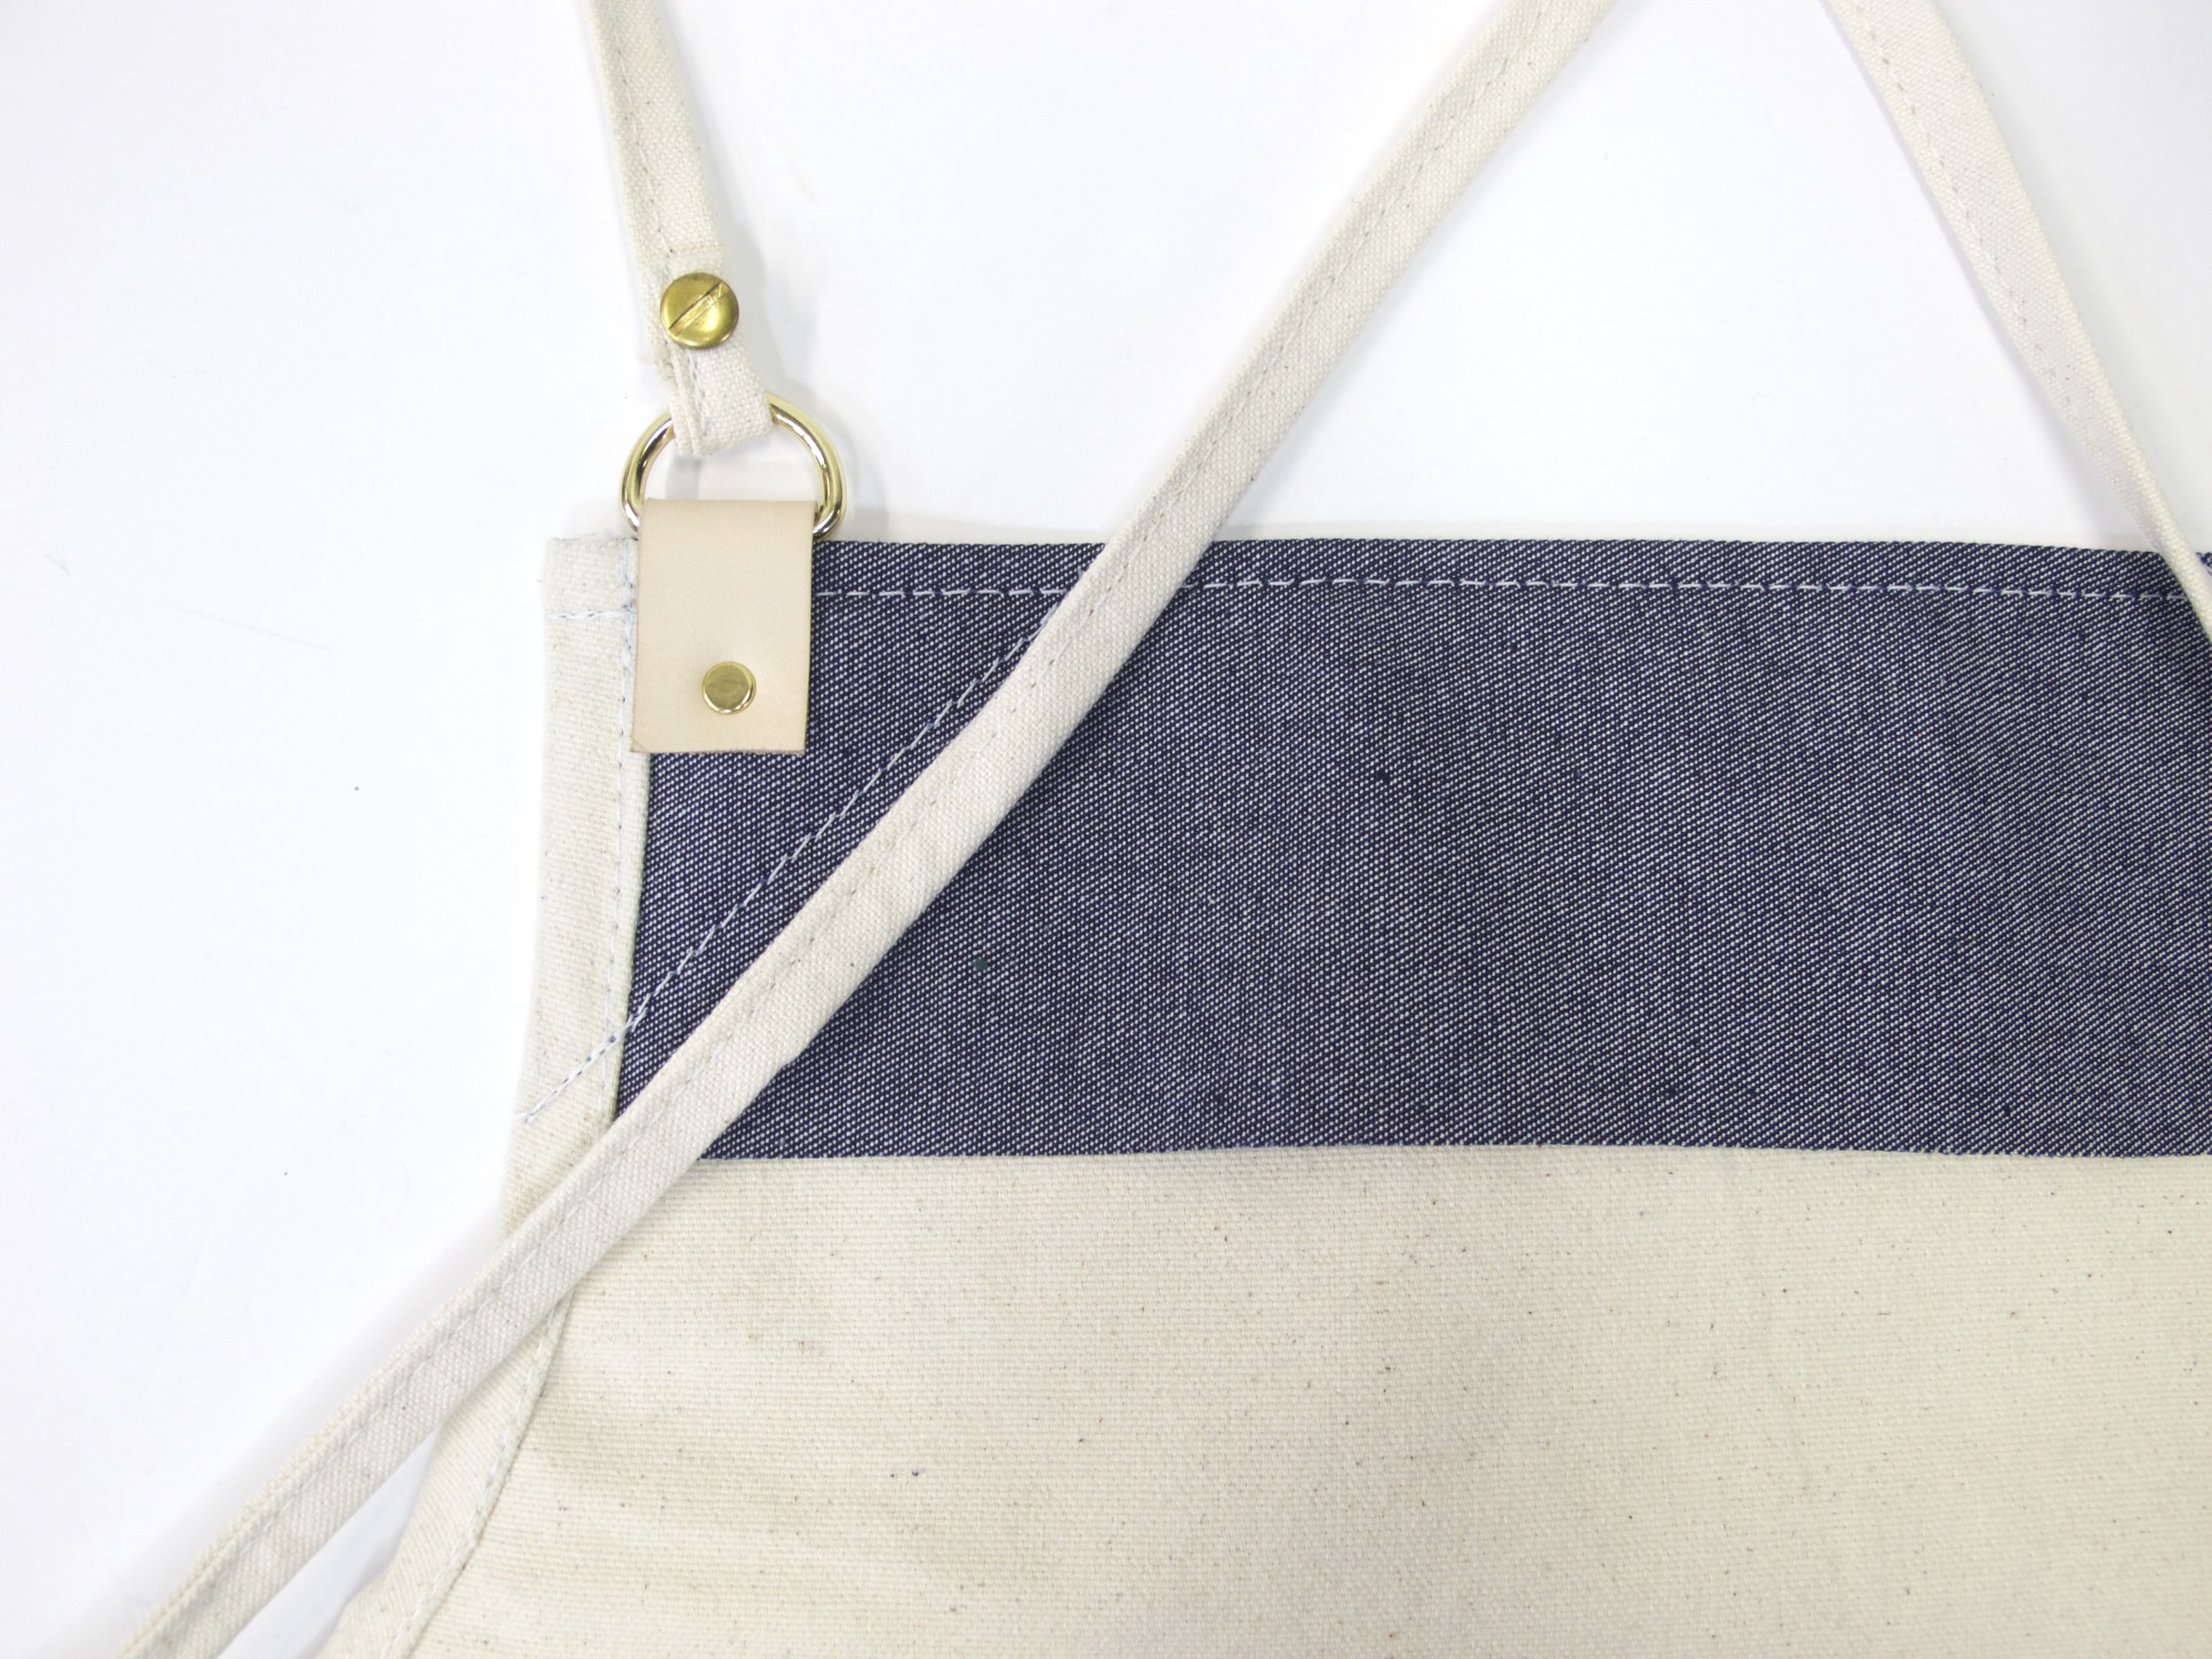 CANVAS-MAKERS-APRON-5.jpg